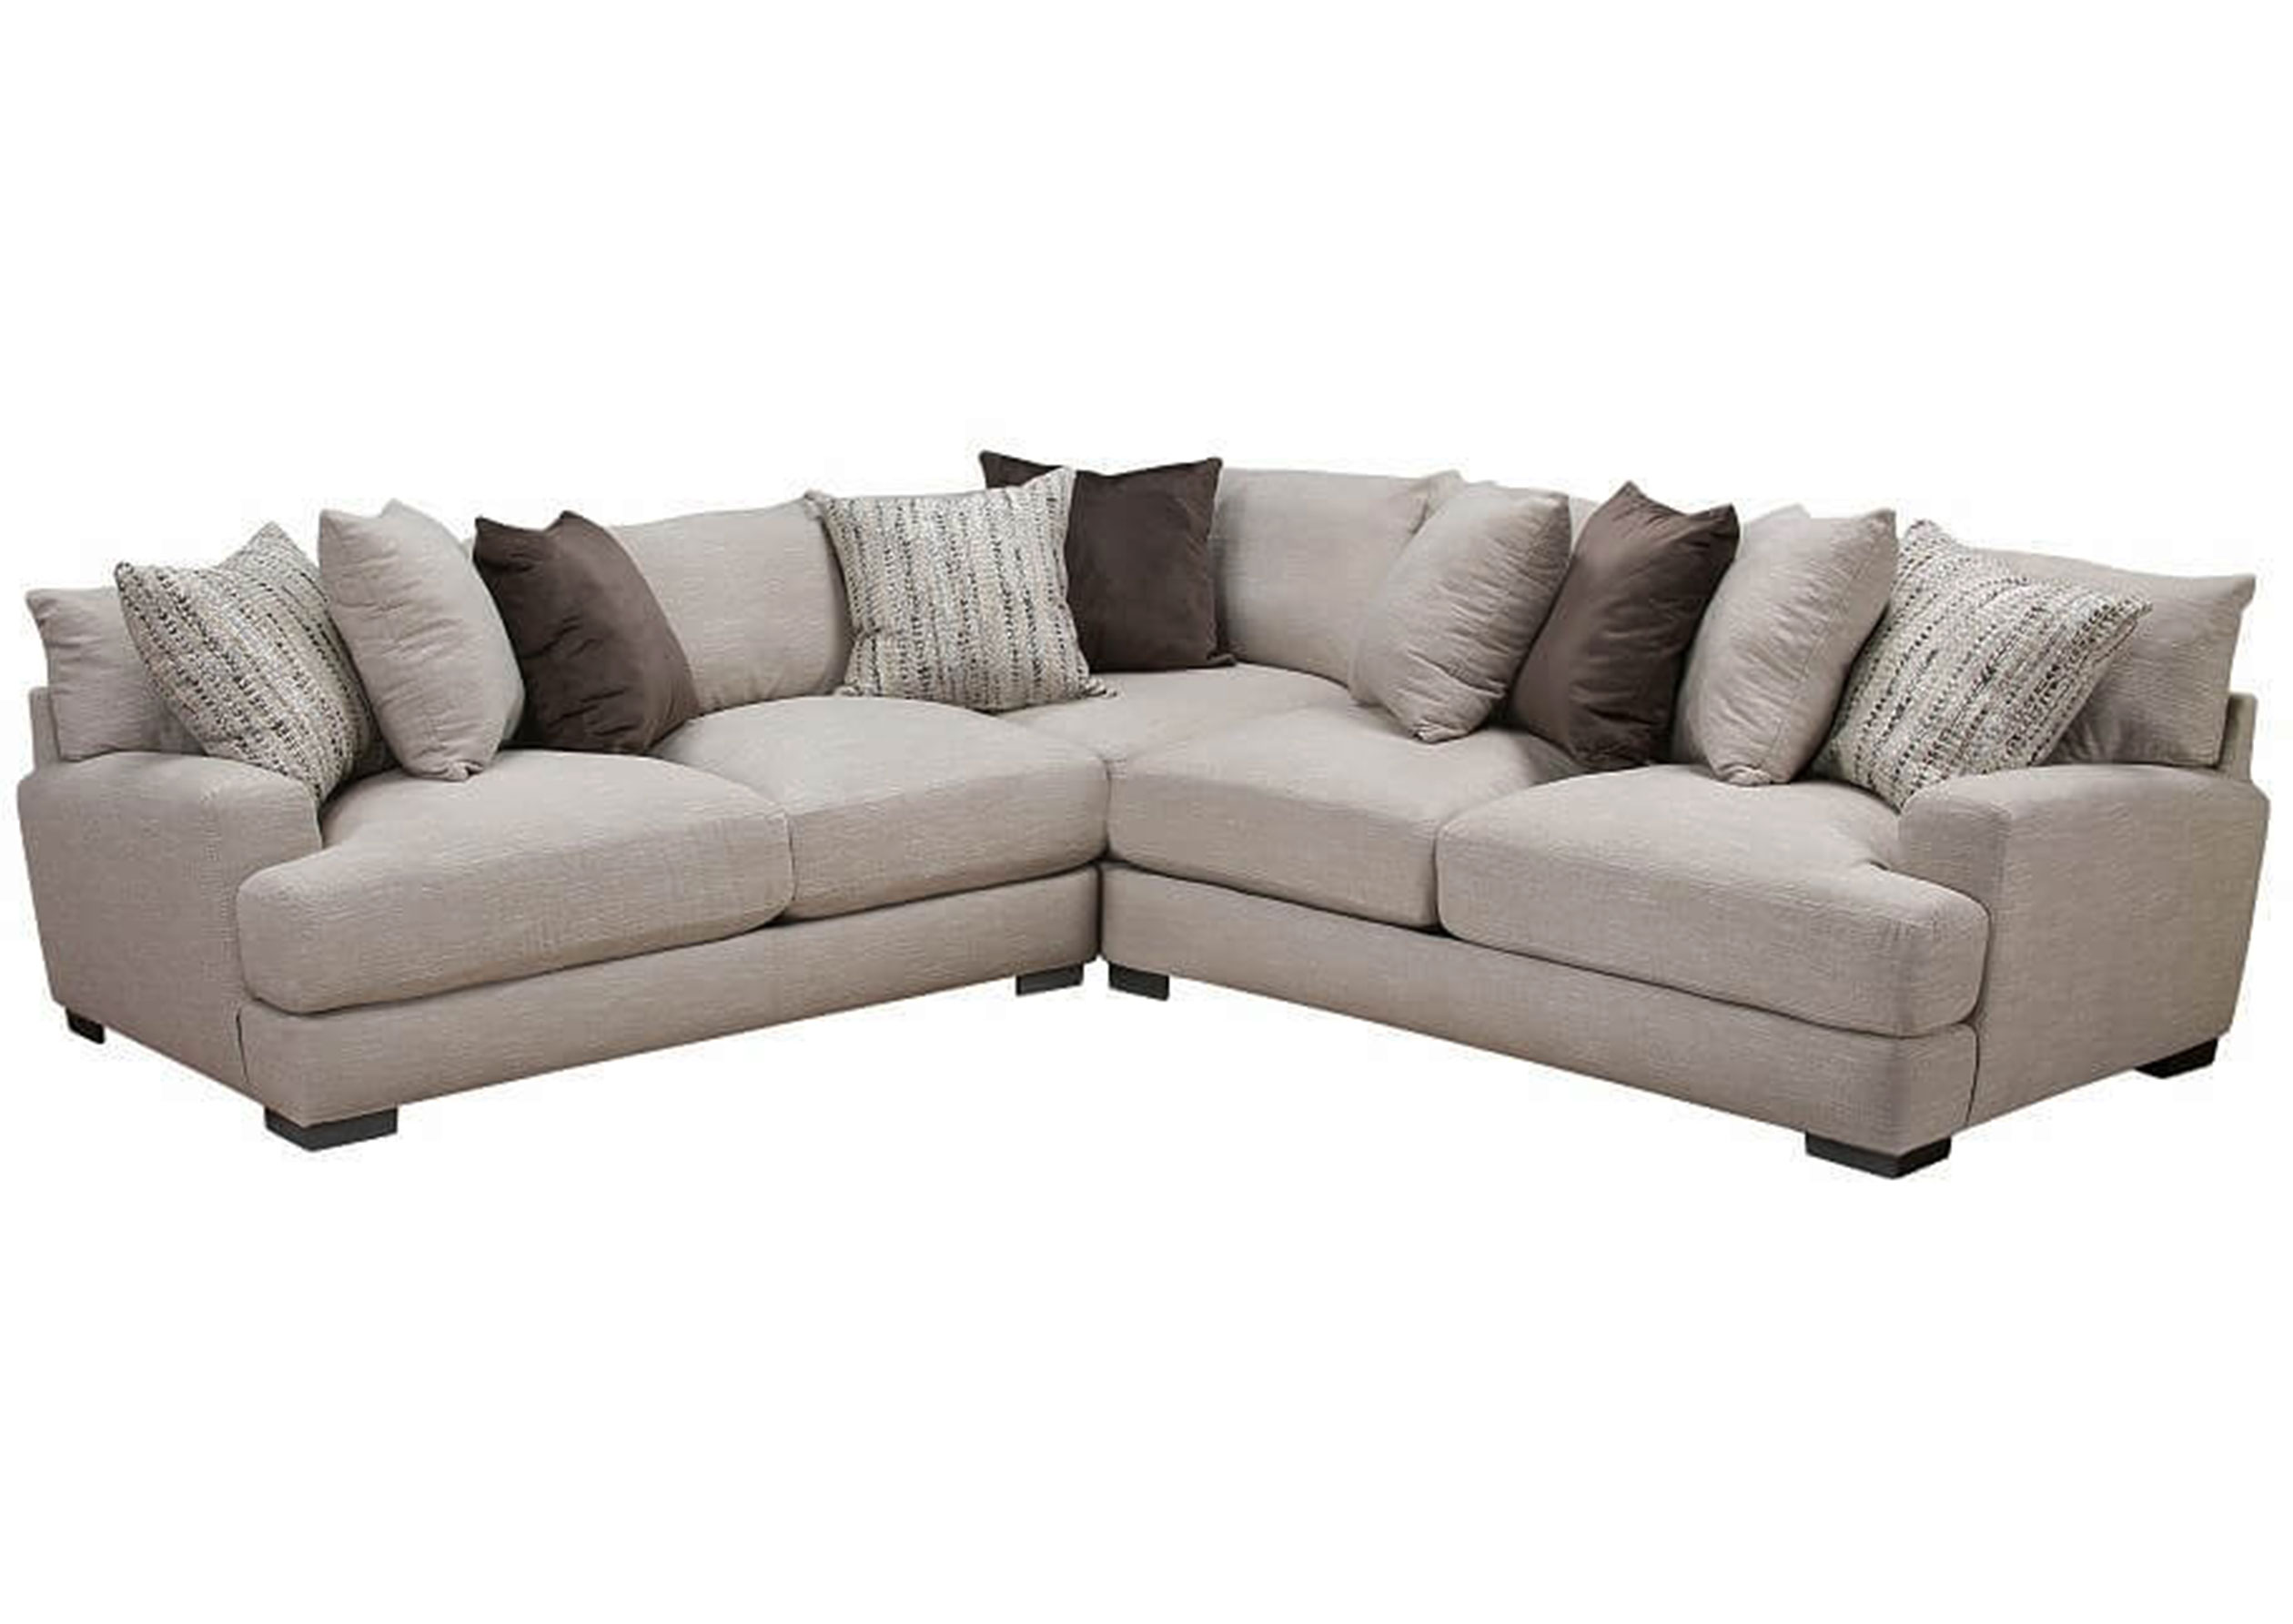 Cool Hannigan 808 Sectional Pillows Included Sofas And Sectionals Evergreenethics Interior Chair Design Evergreenethicsorg